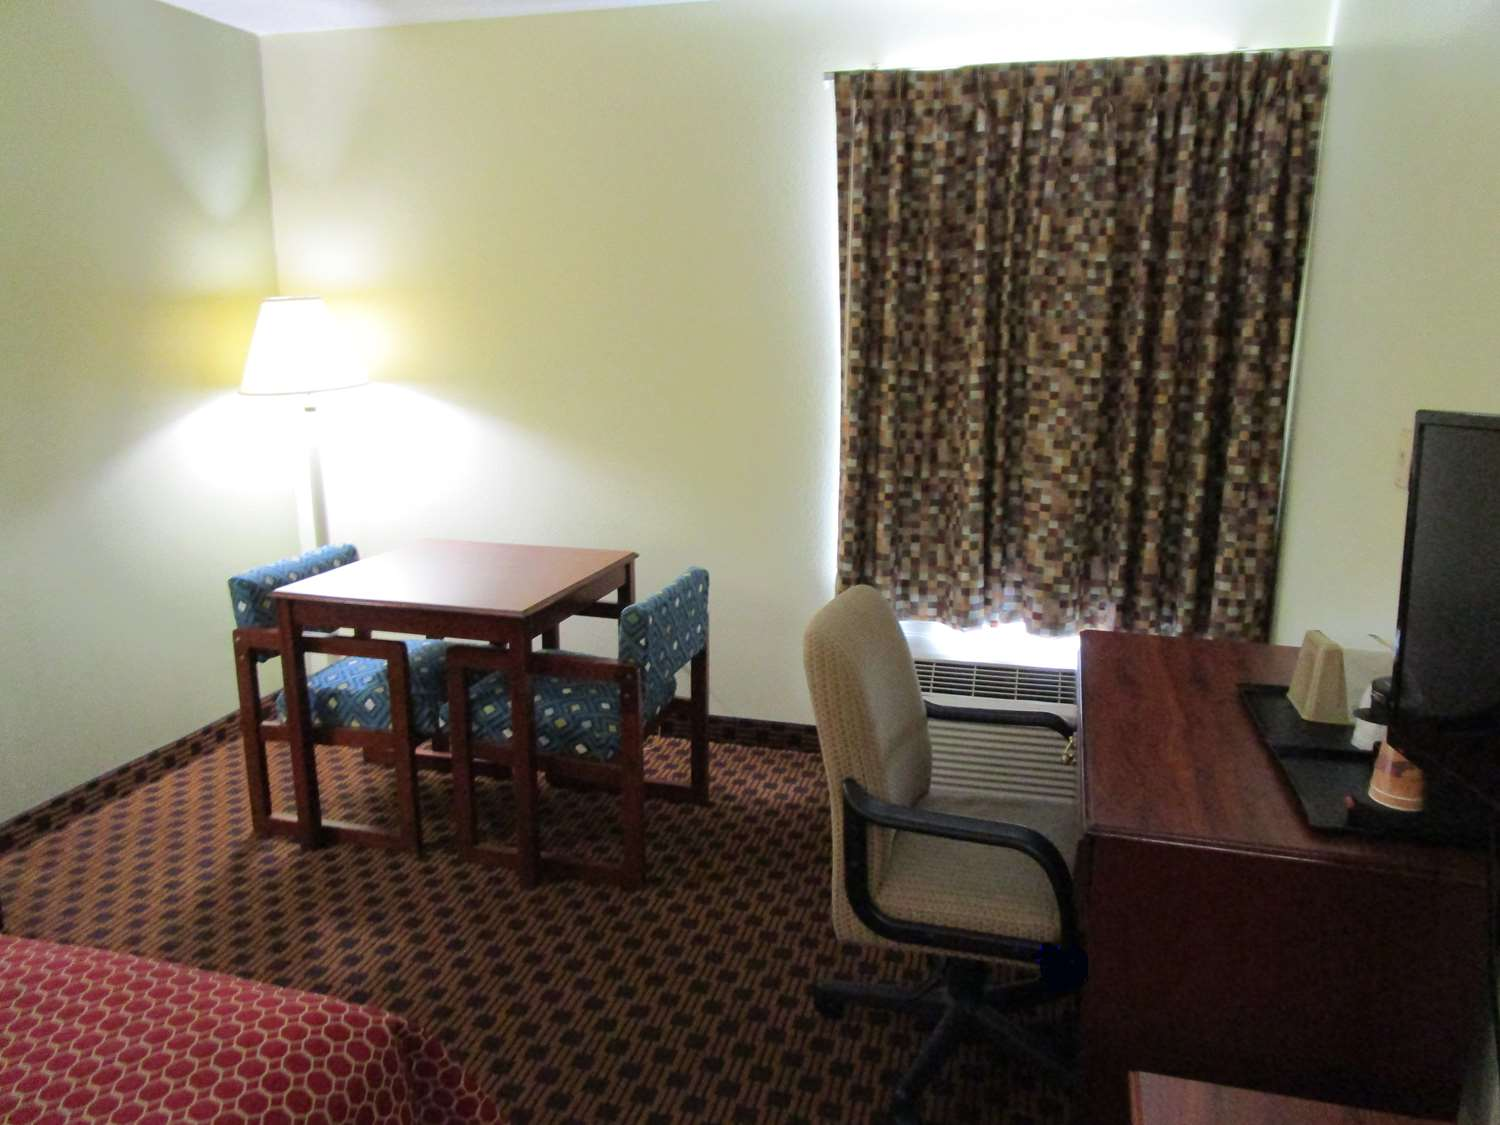 Amenities - SureStay Plus Hotel Hamilton Place Mall Chattanooga